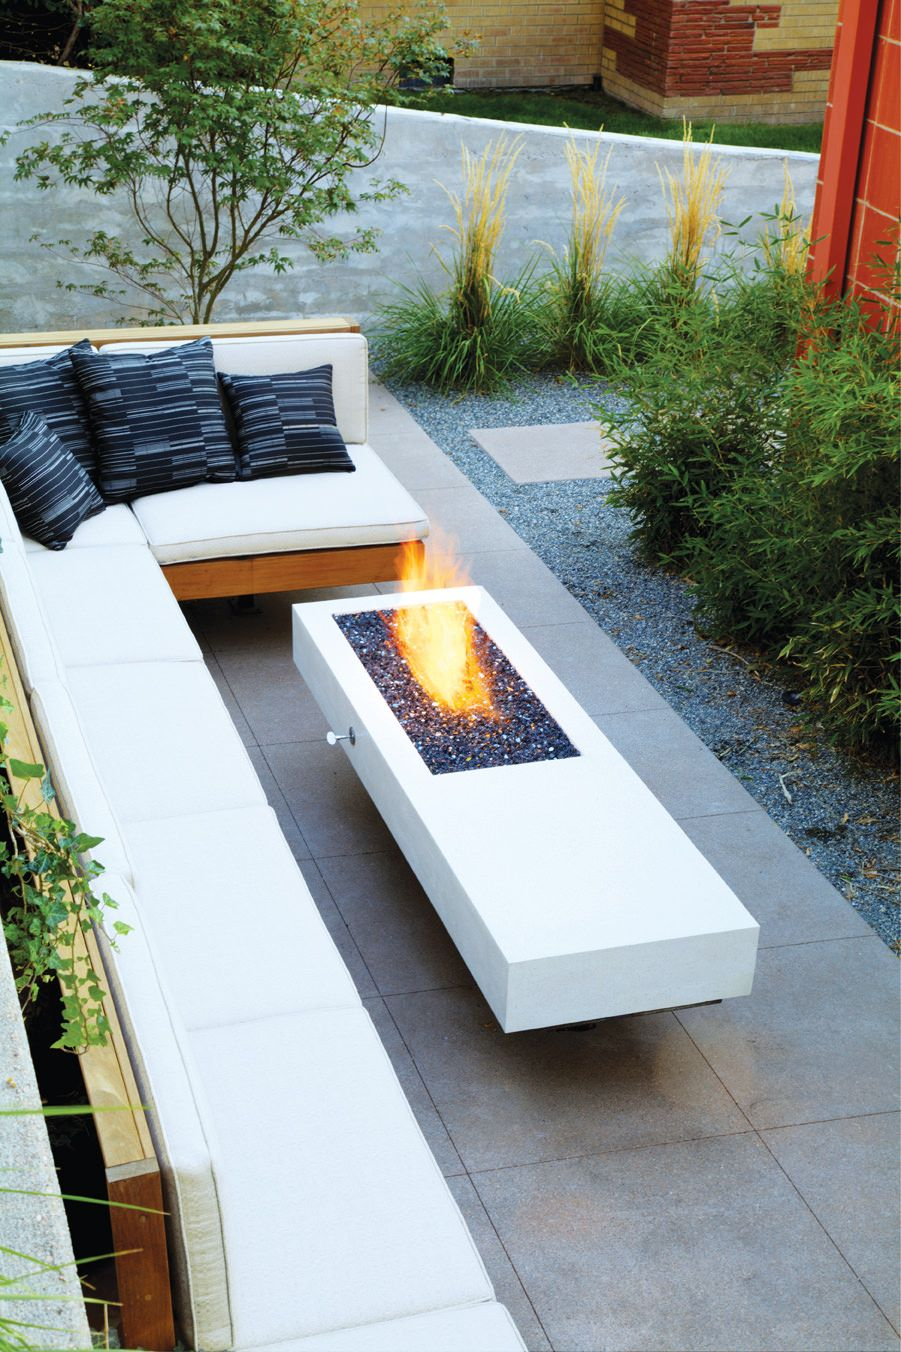 Furniture Gorgeous Sectional White Modern Outdoor Bench With Black Pillows Facing Fireplace Table I Fire Pit Backyard Backyard Patio Designs Backyard Seating Modern outdoor fire pit table